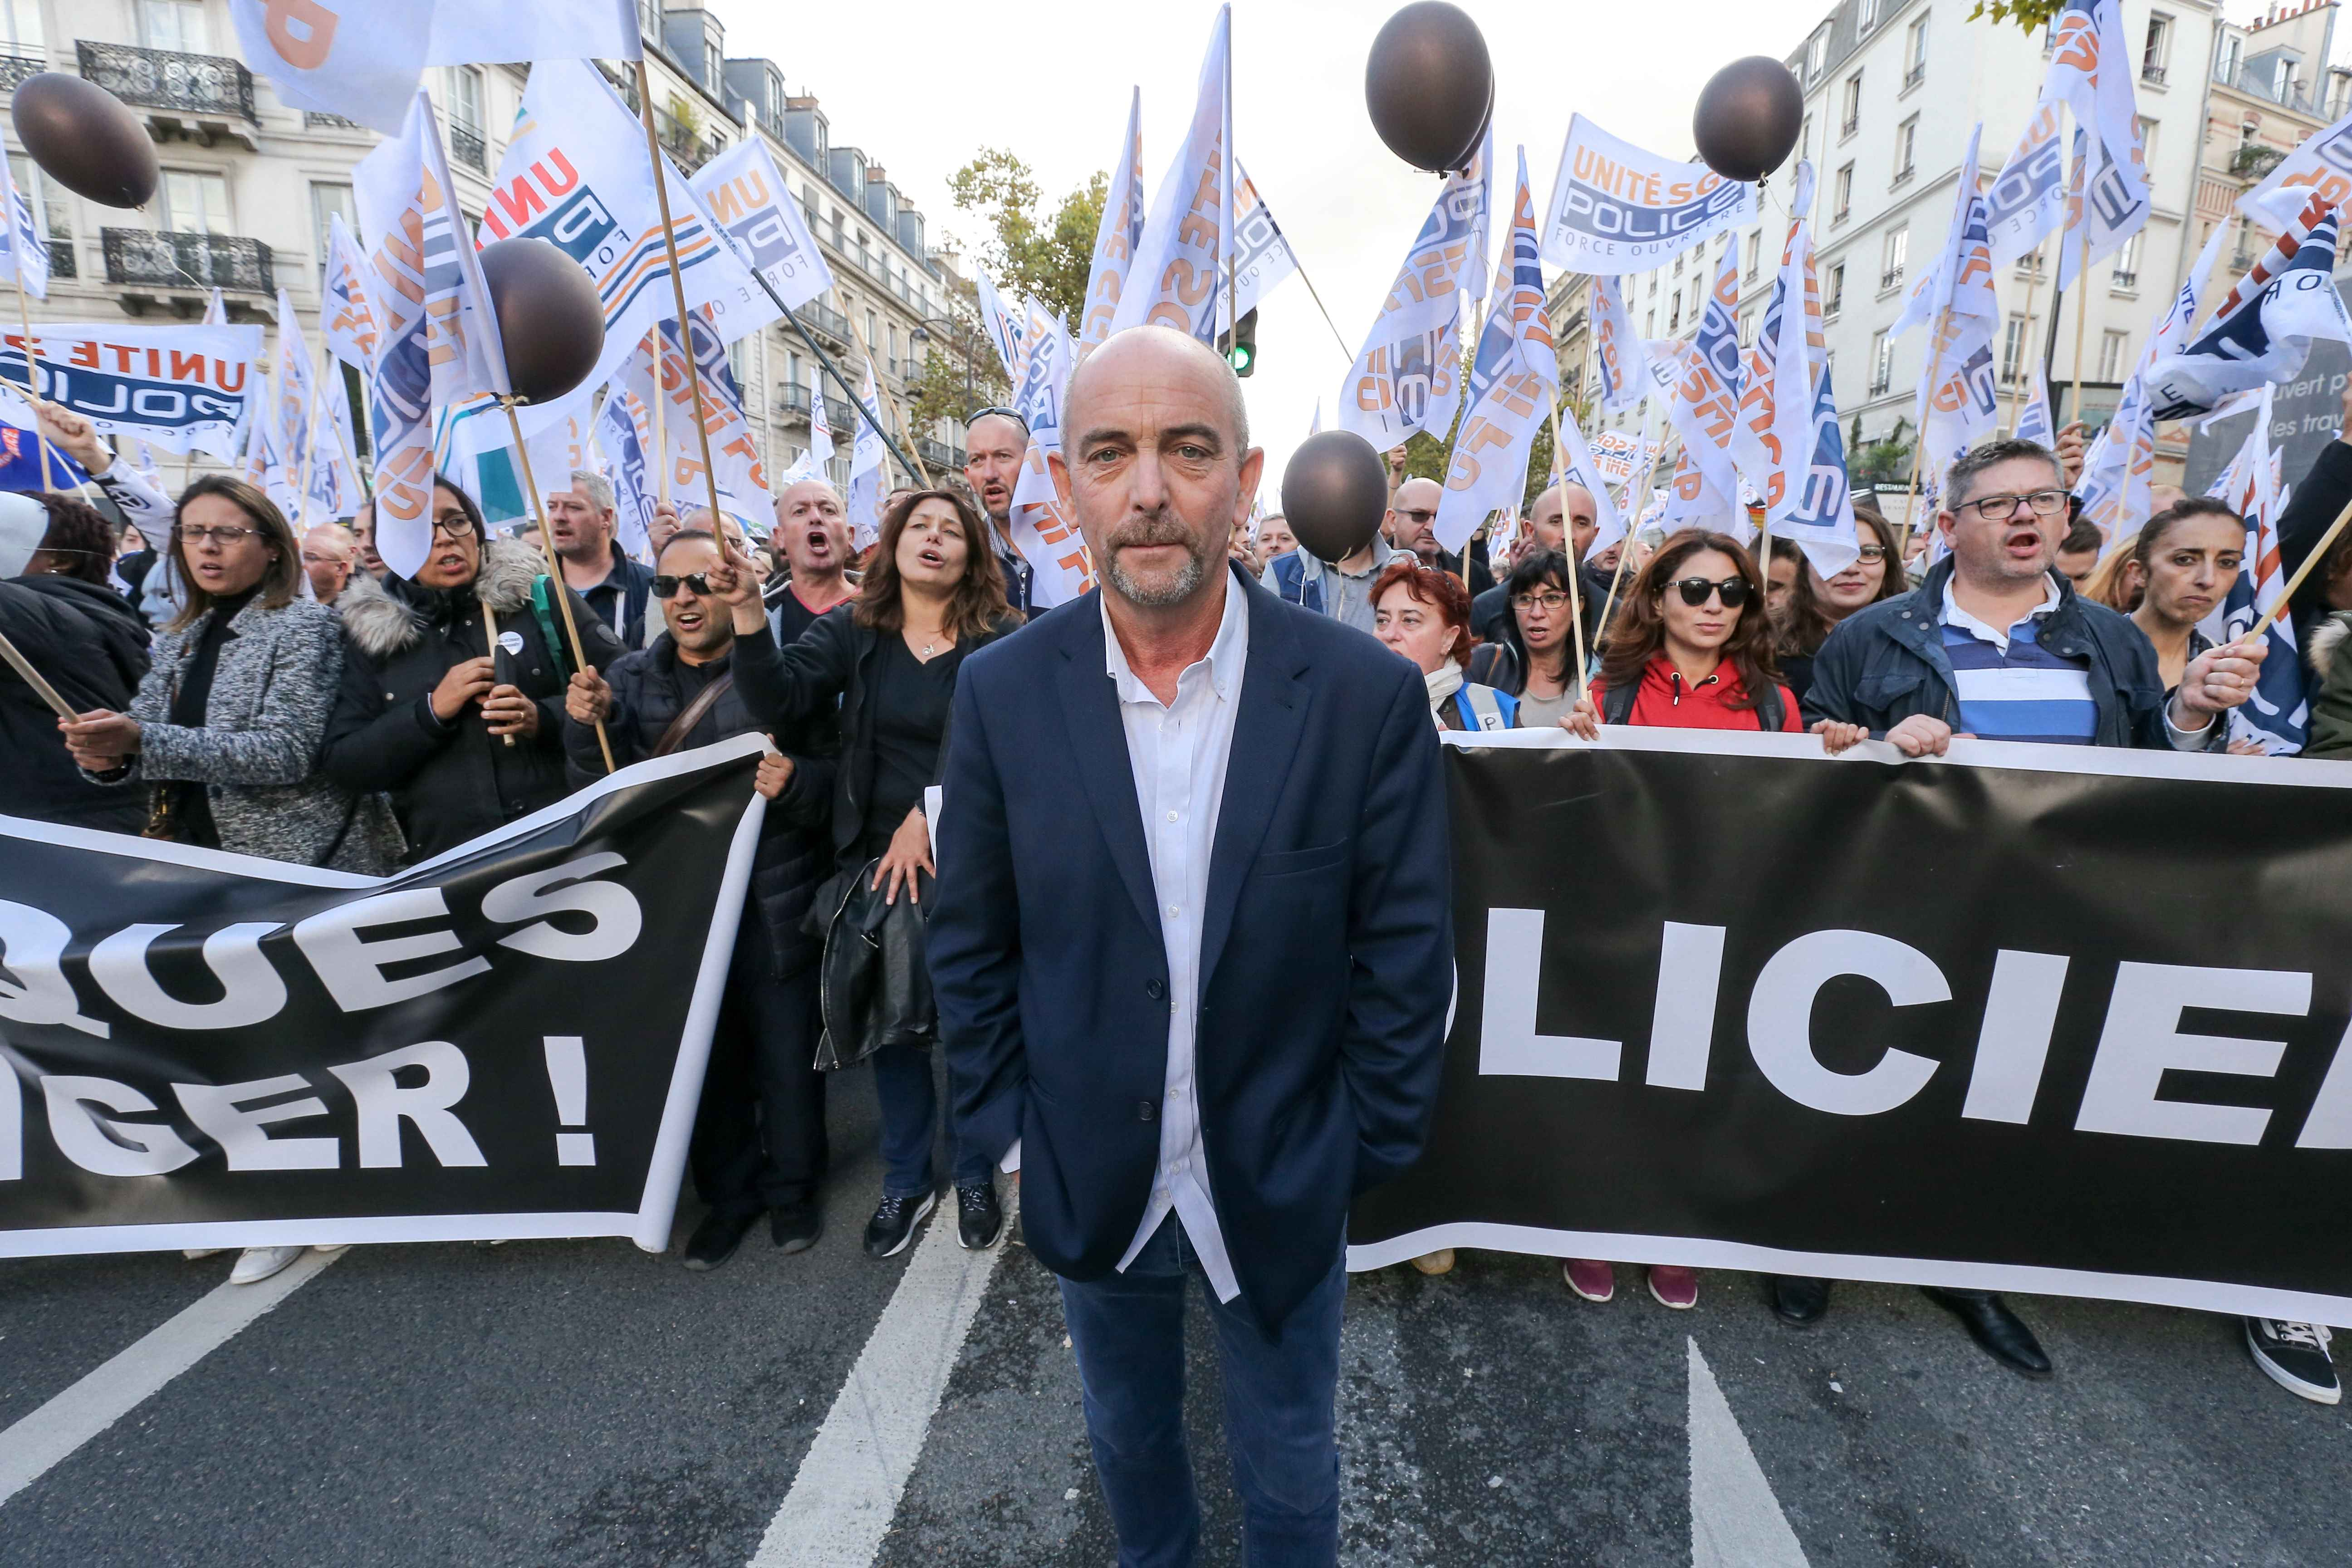 Yves Lefebvre (C), general secretary of the Unite SGP-Police union, the ''Walk of Wrath'' of the Policemen in Paris on October 2, 2019. At the call of the National Police unions, several thousand police officers demonstrated in Place de la Bastille on 2 Oc